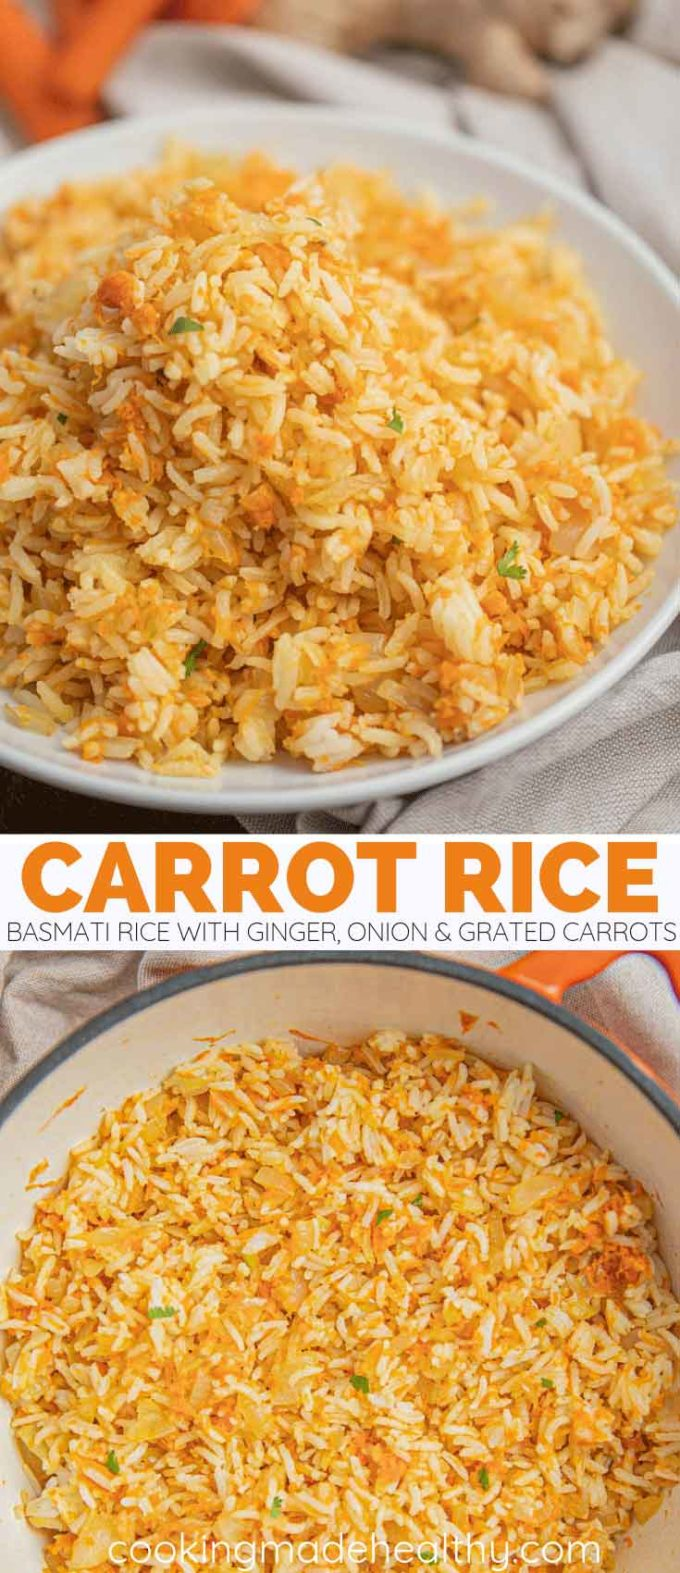 Carrot Rice with ginger and onion